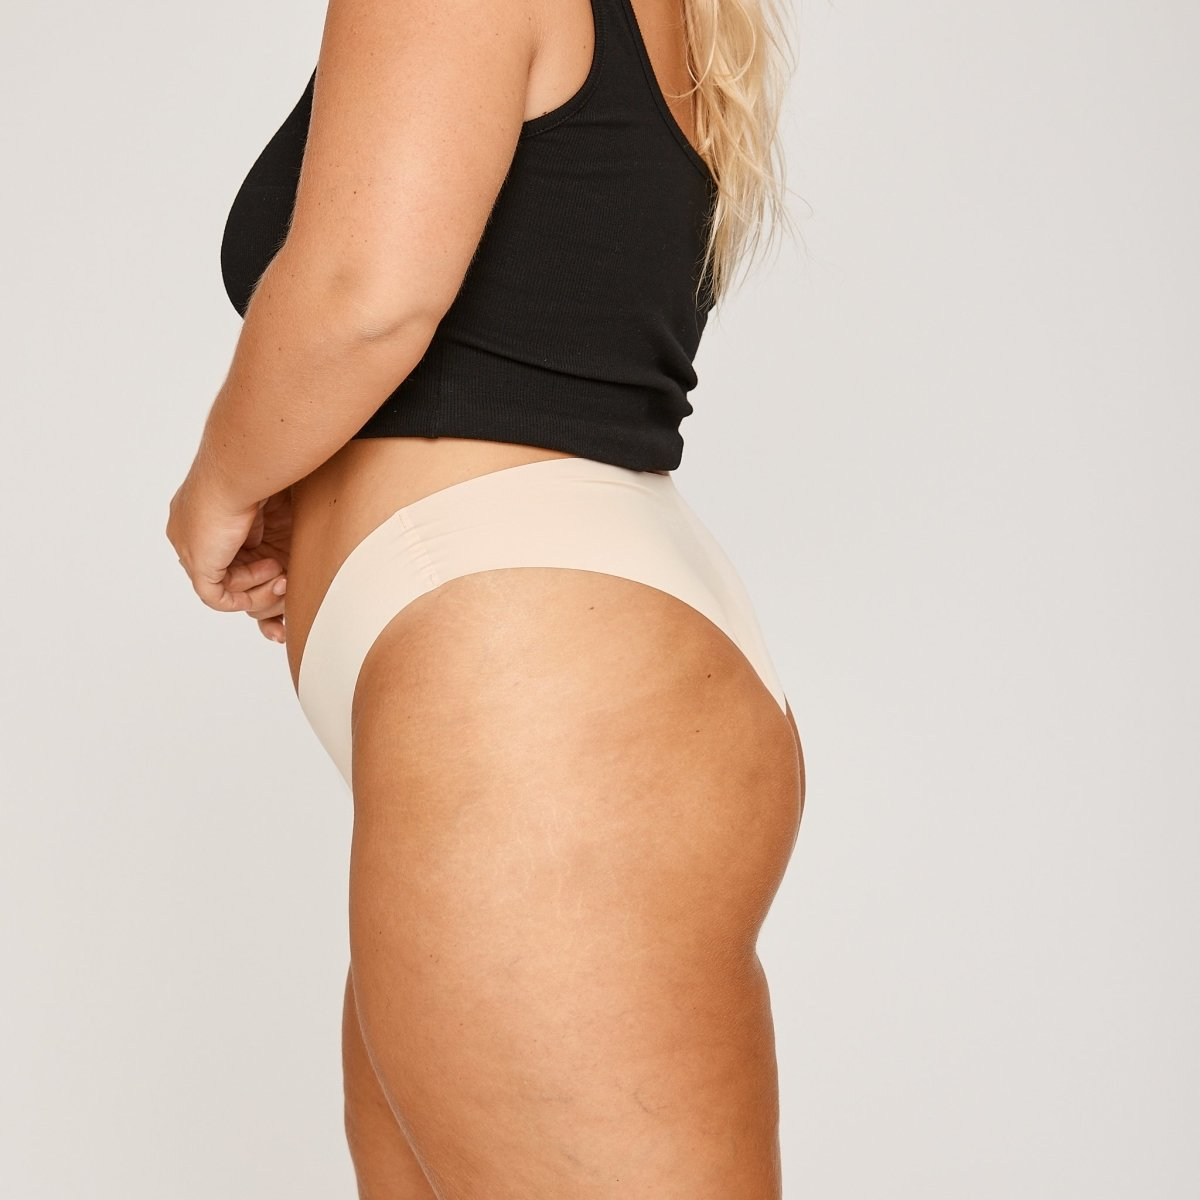 Original-Rise Cheeky - Buttermilk - Peach Underwear